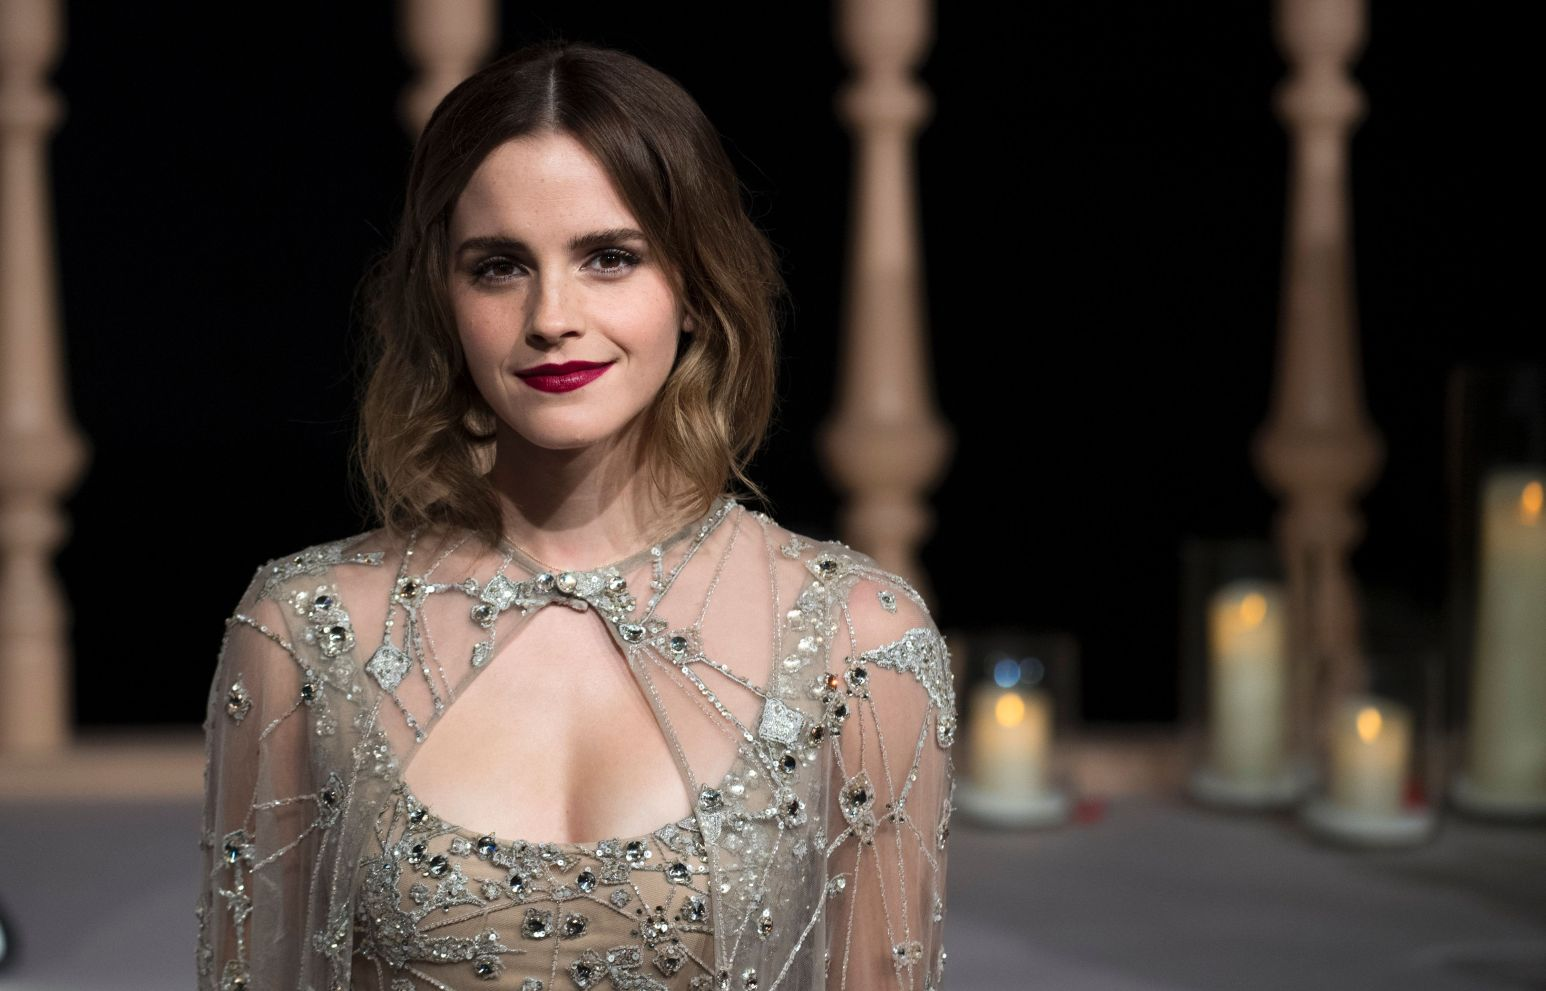 emma watson in the beauty and the beast premiere in shanghai hd